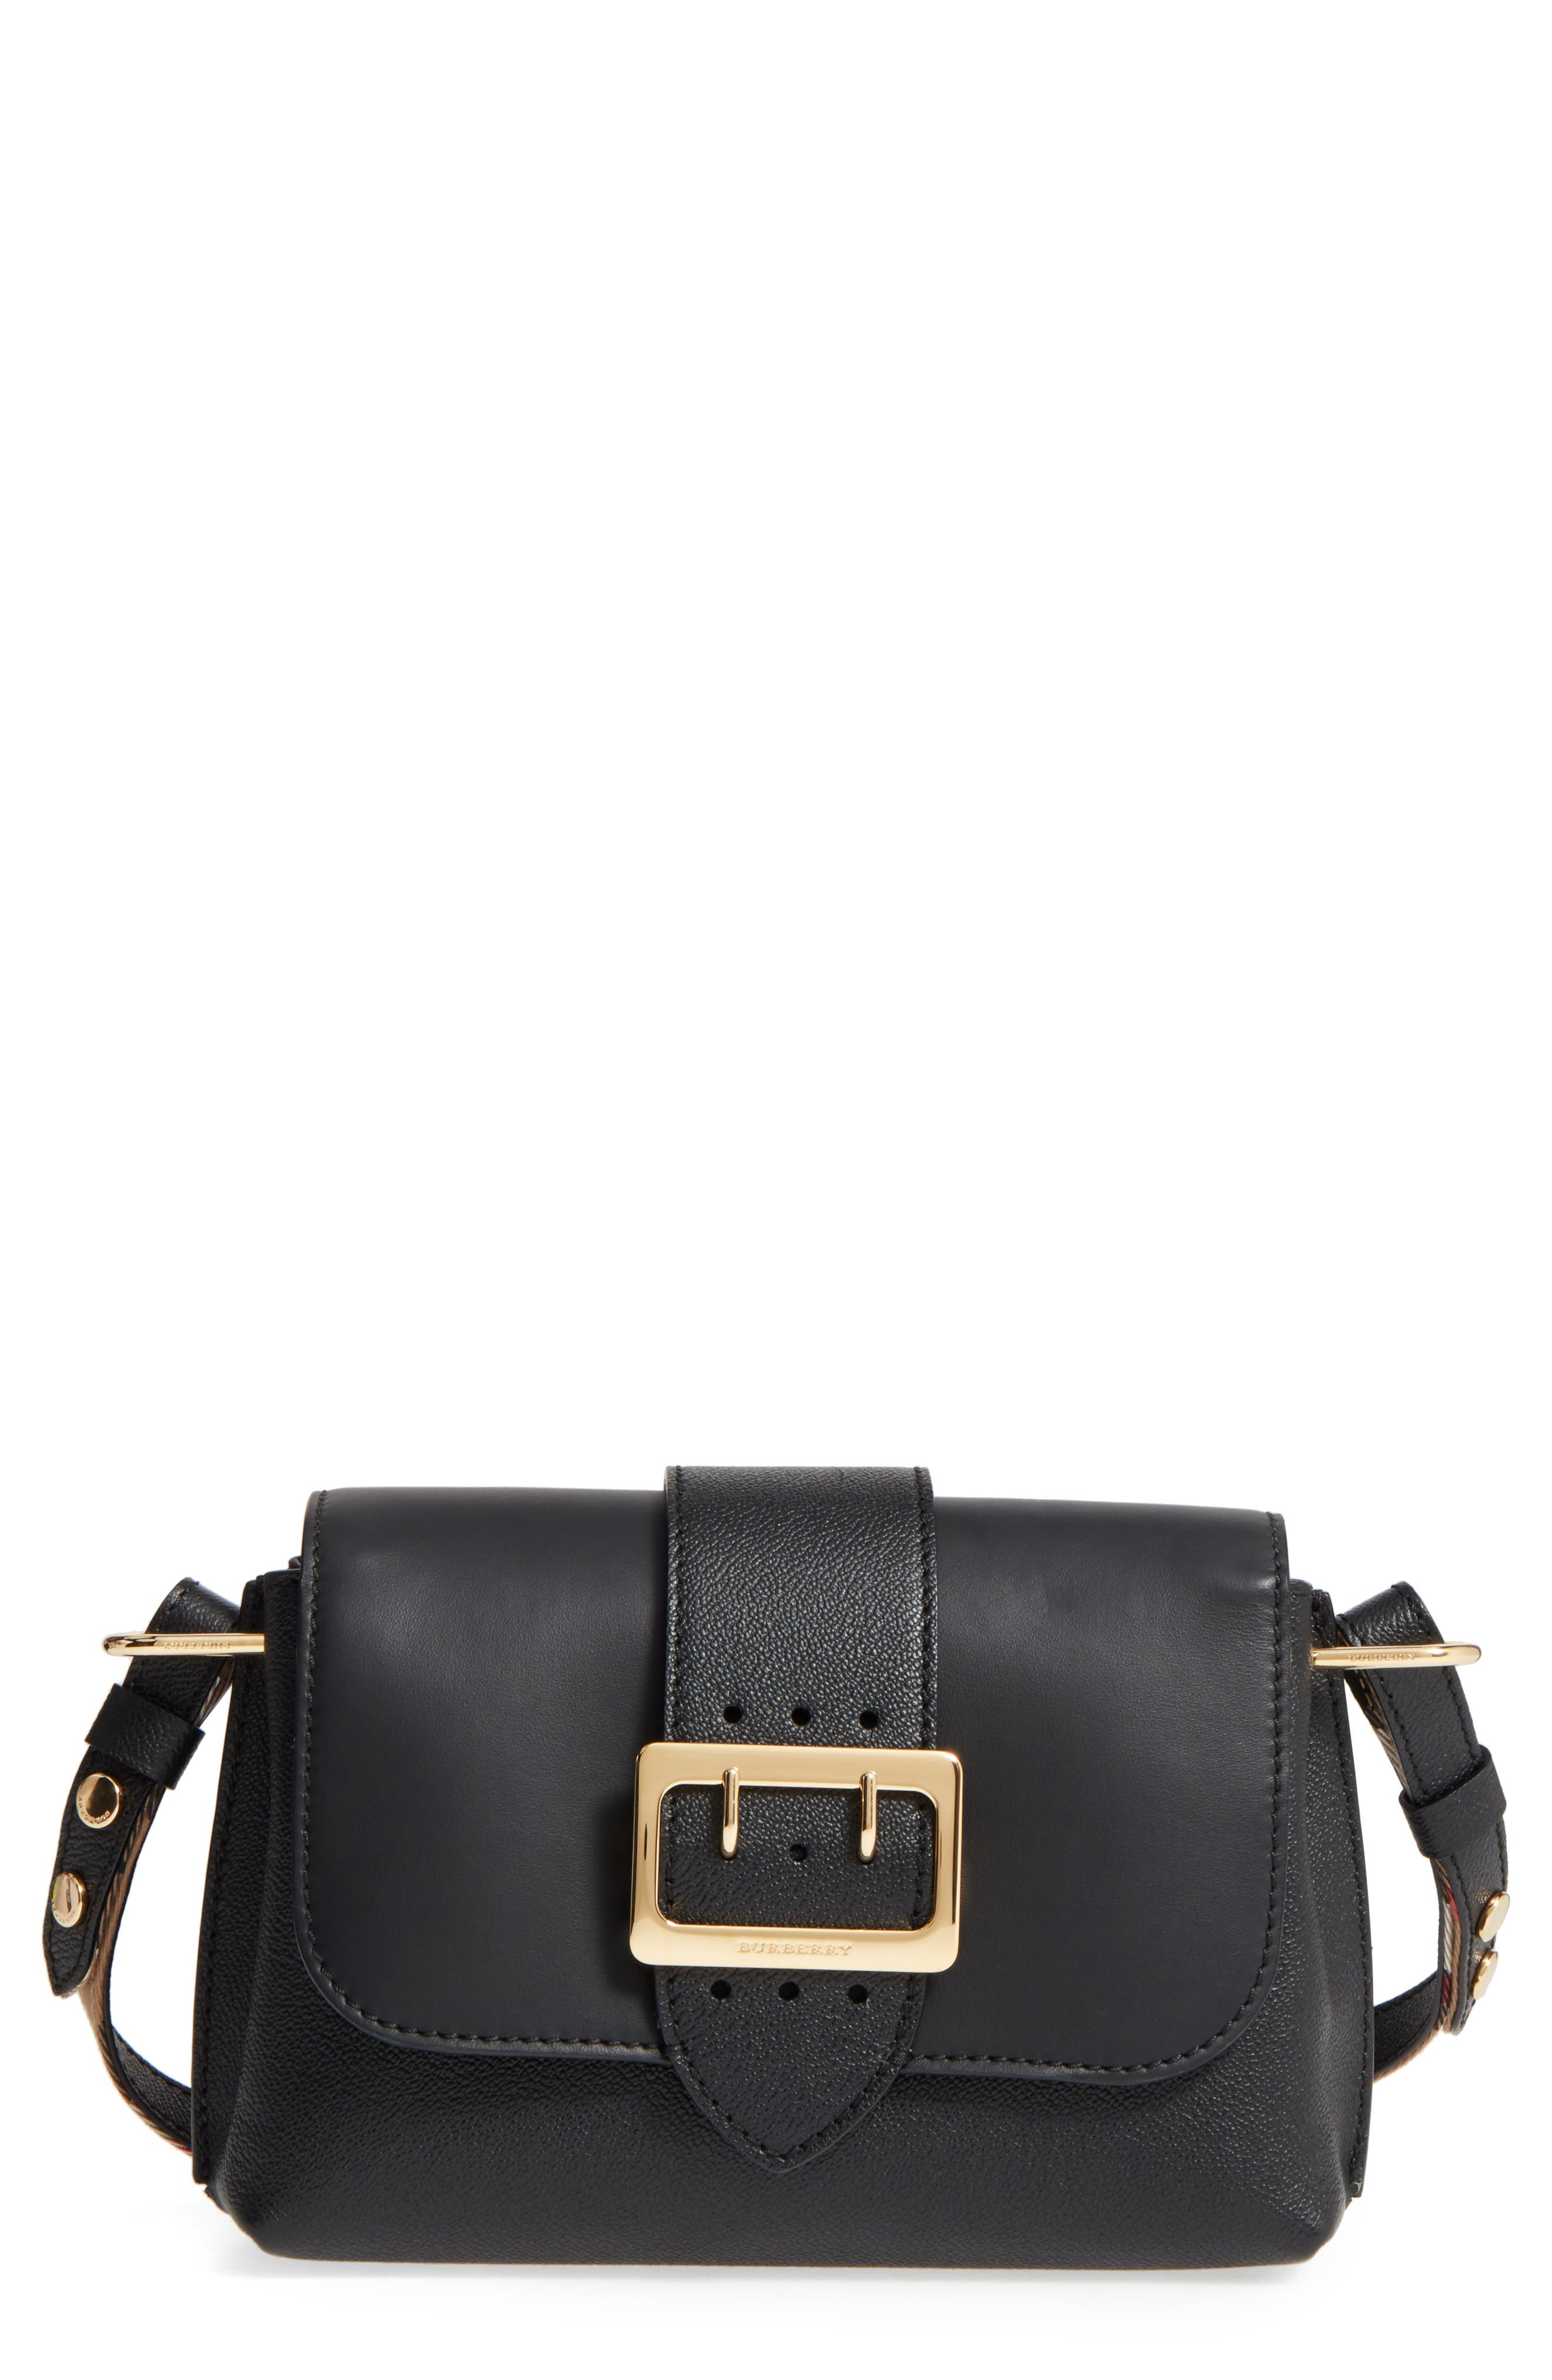 Main Image - Burberry Small Medley Leather Crossbody Bag